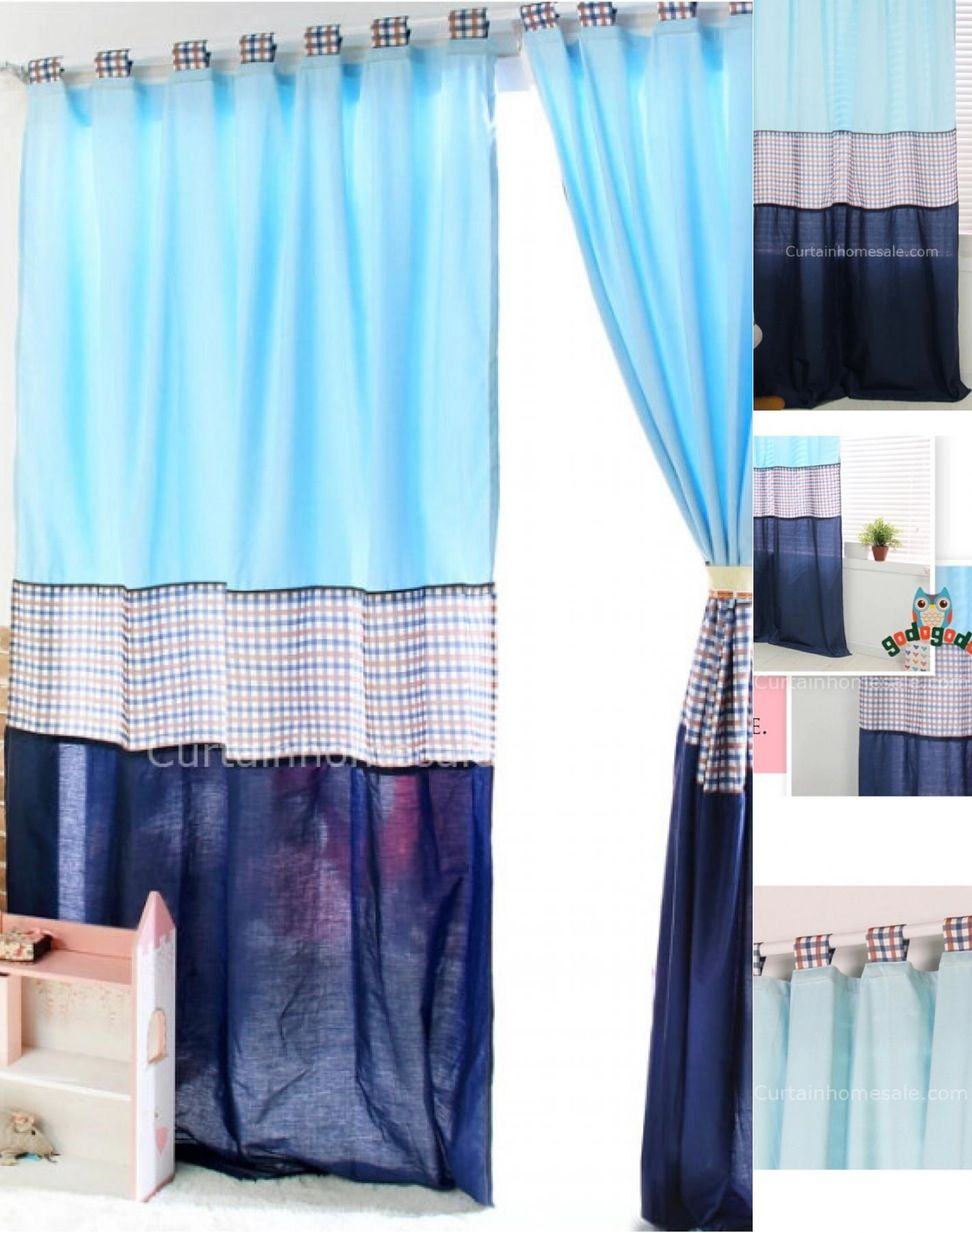 Baby Blue Nursery Curtains On Free Shipping Plaid And Solid Combination Style For Kids Bedroom Boy Exchange Room Decor